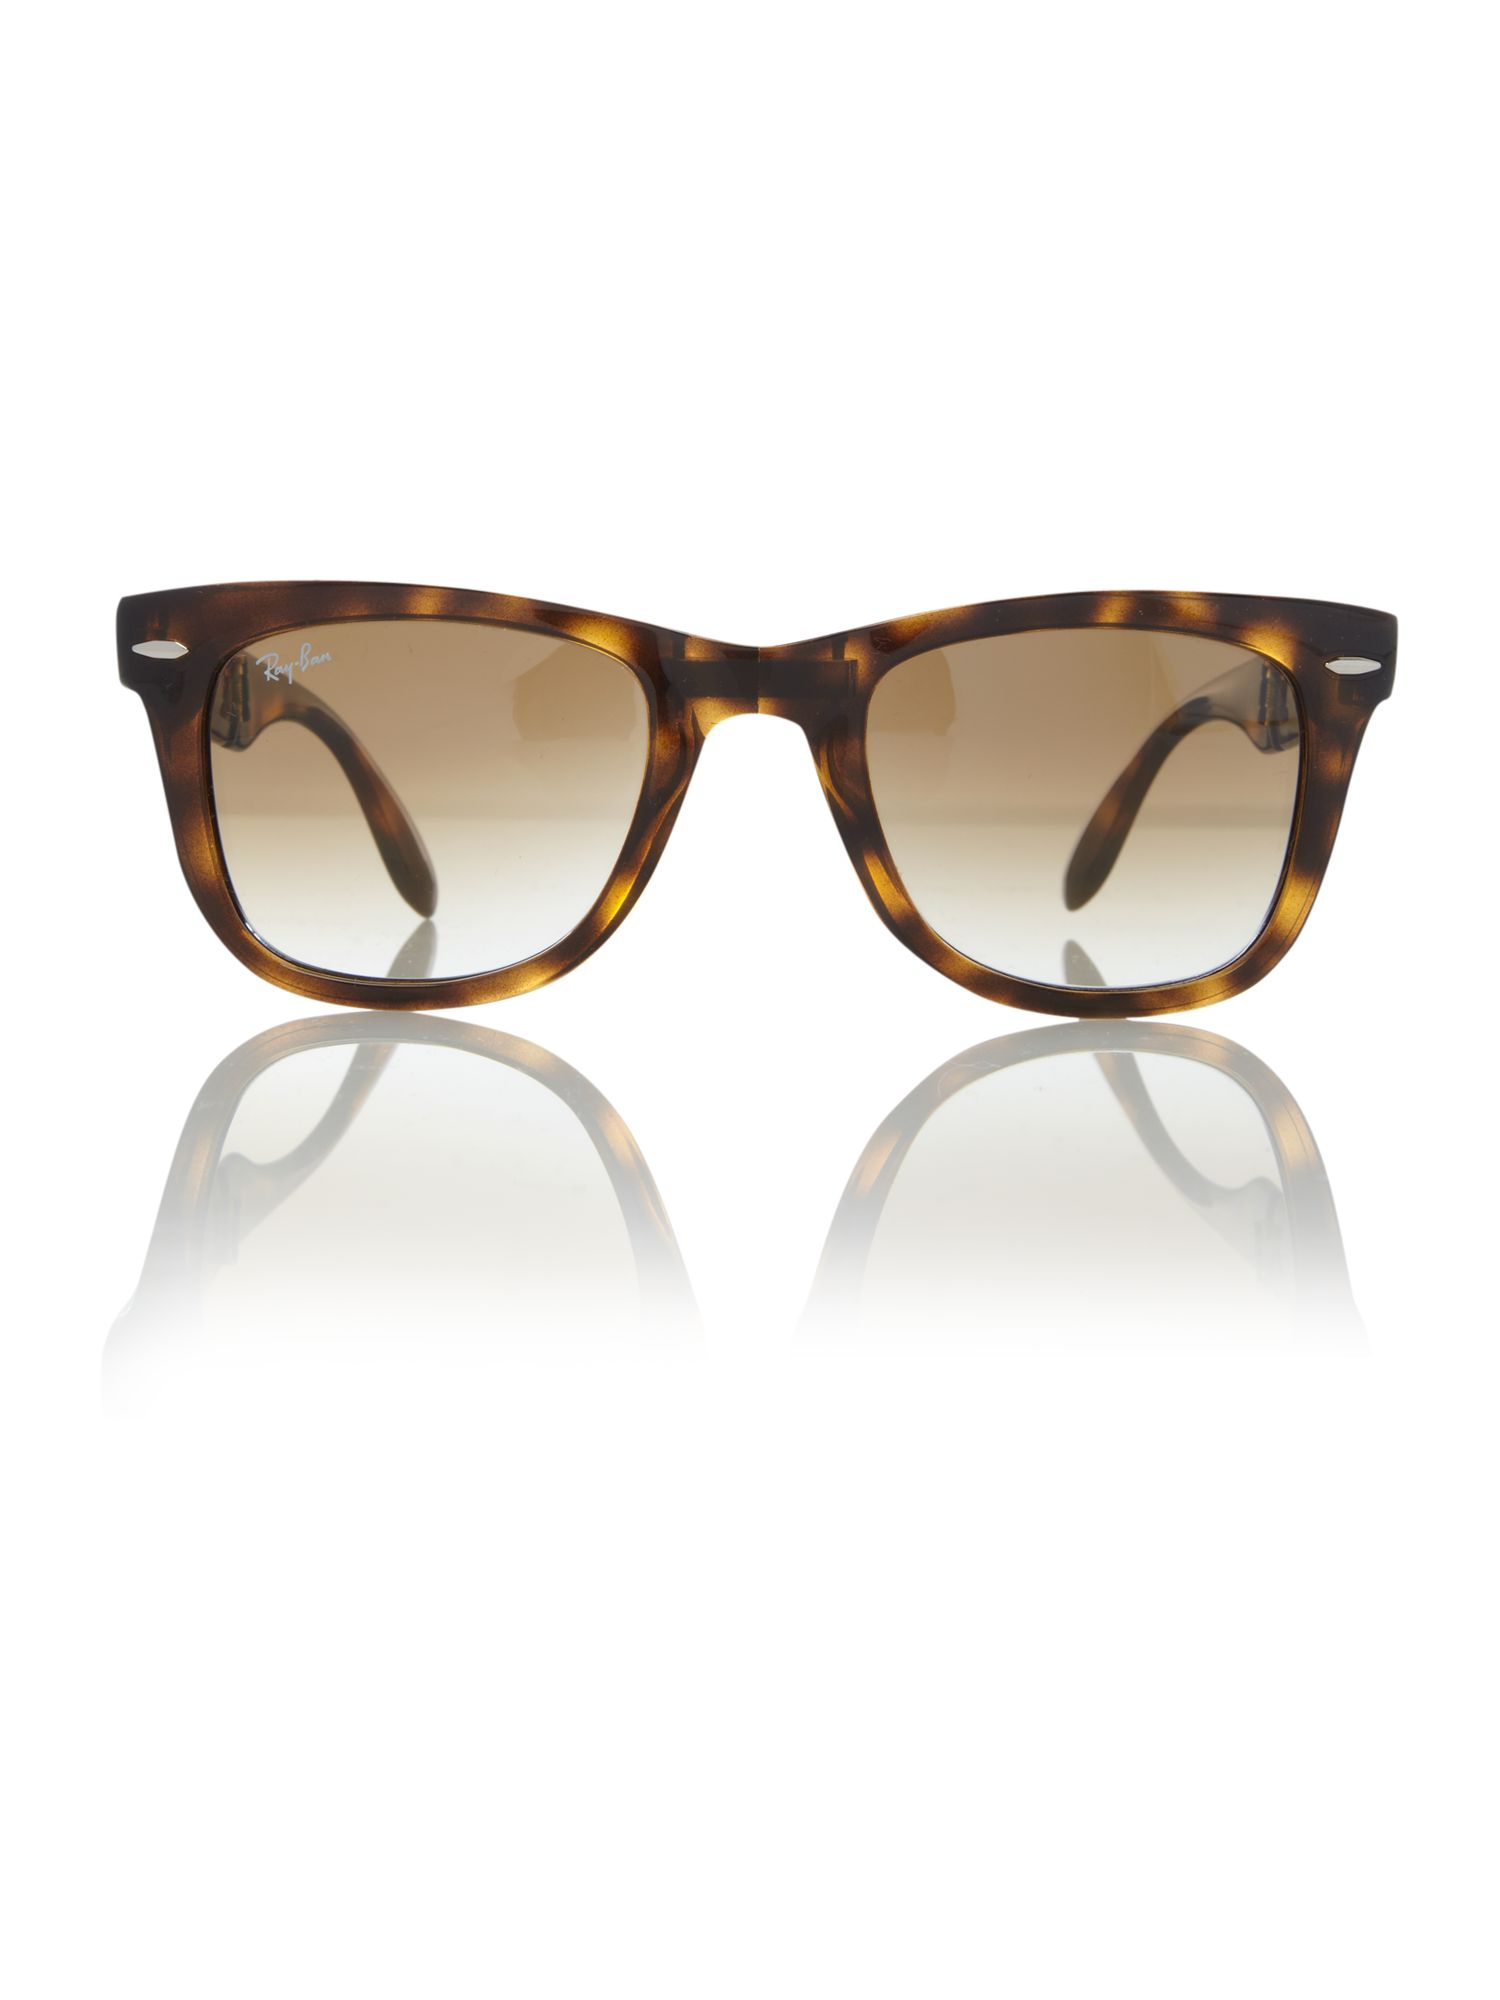 Unisex RB4105 Folding Wayfarer Brown Sunglasses